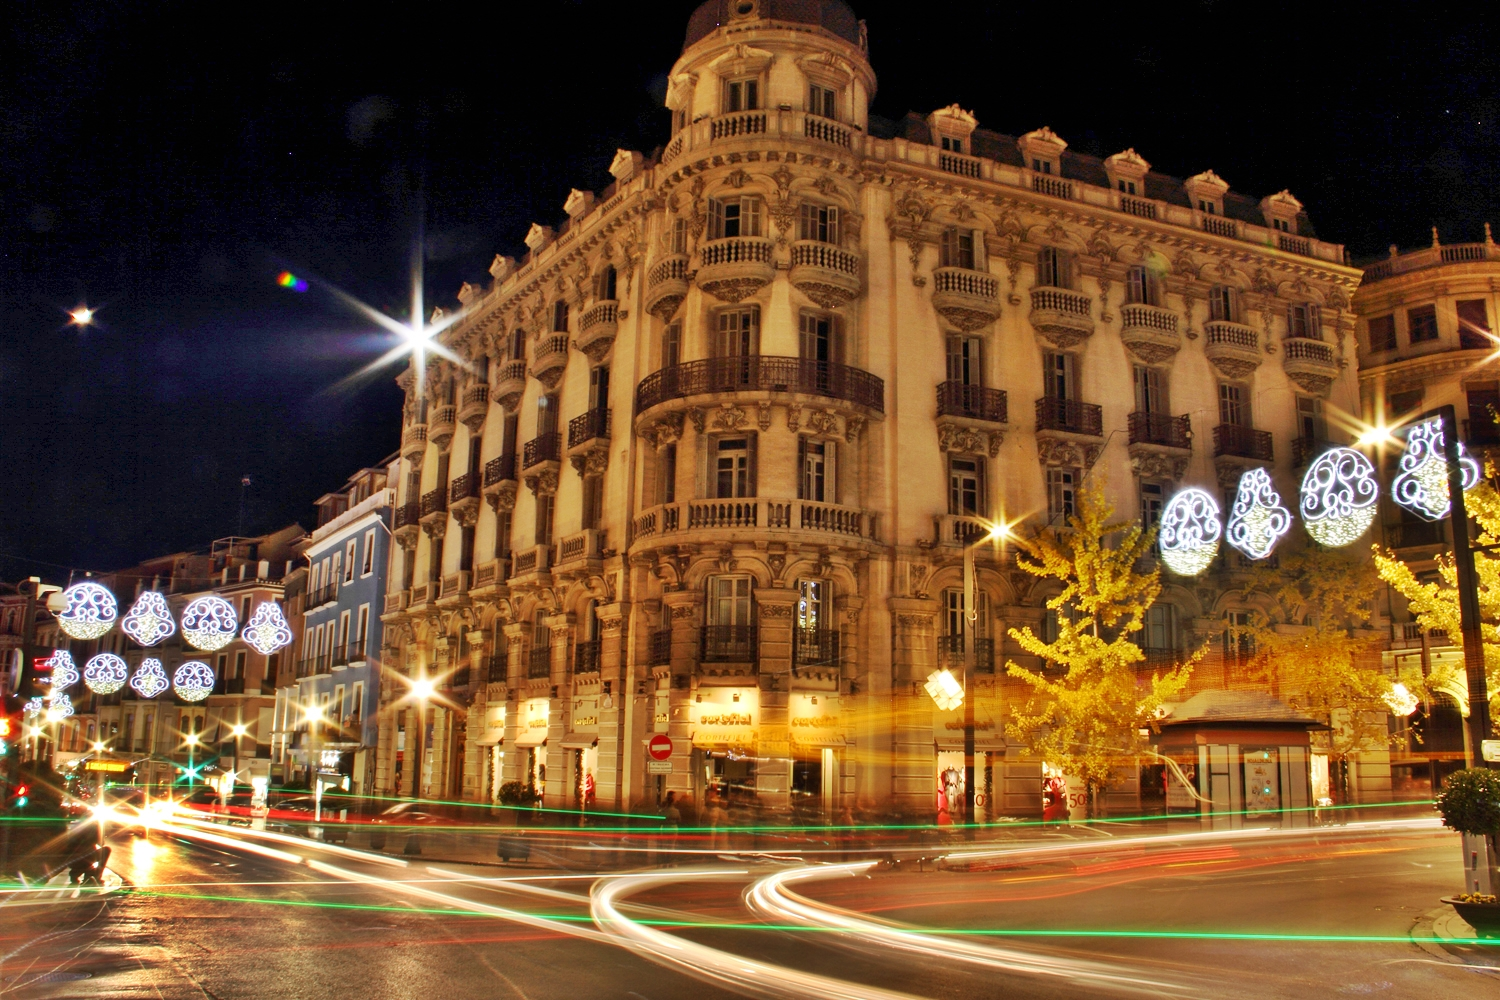 """Chrismas Lights"" - Gran Via, Granada - FL04162"